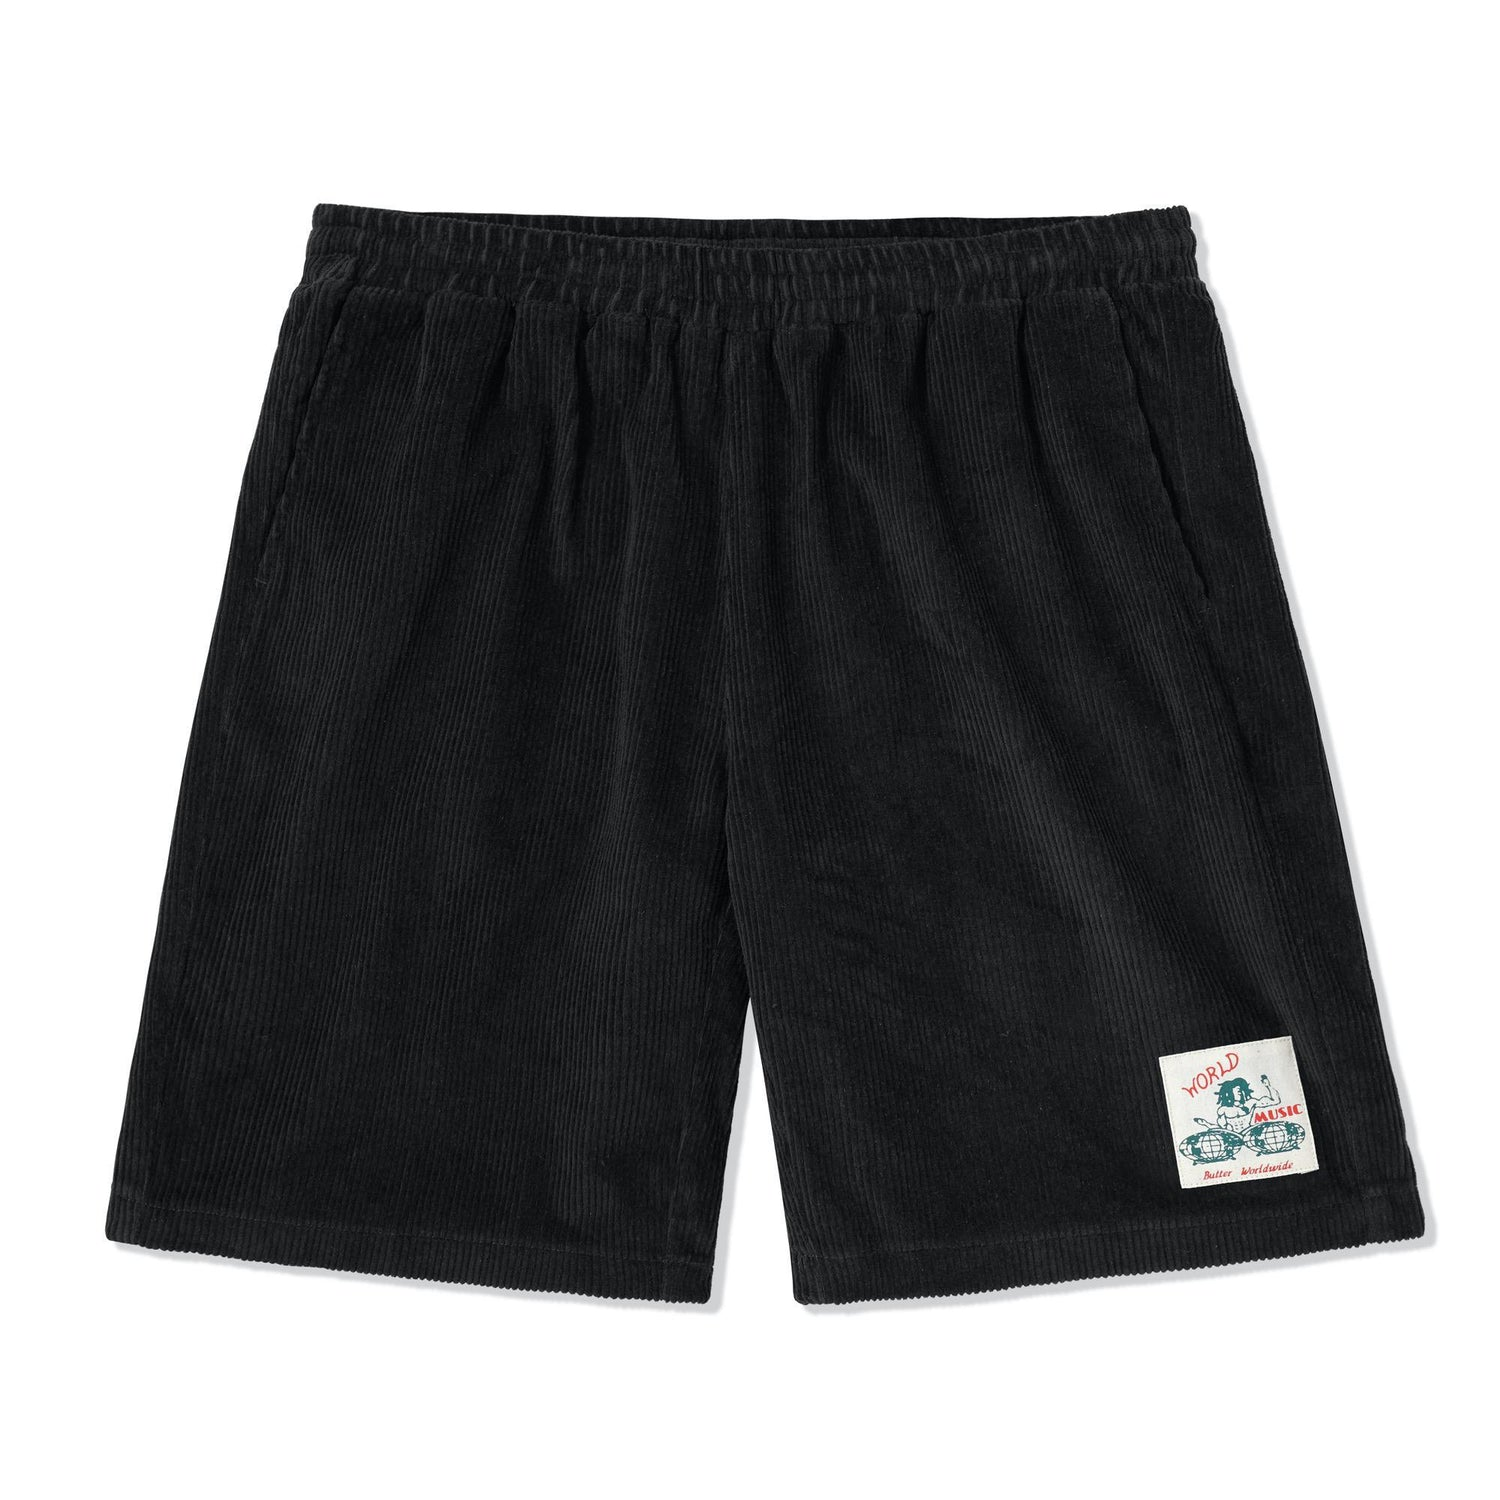 World Music Shorts, Black